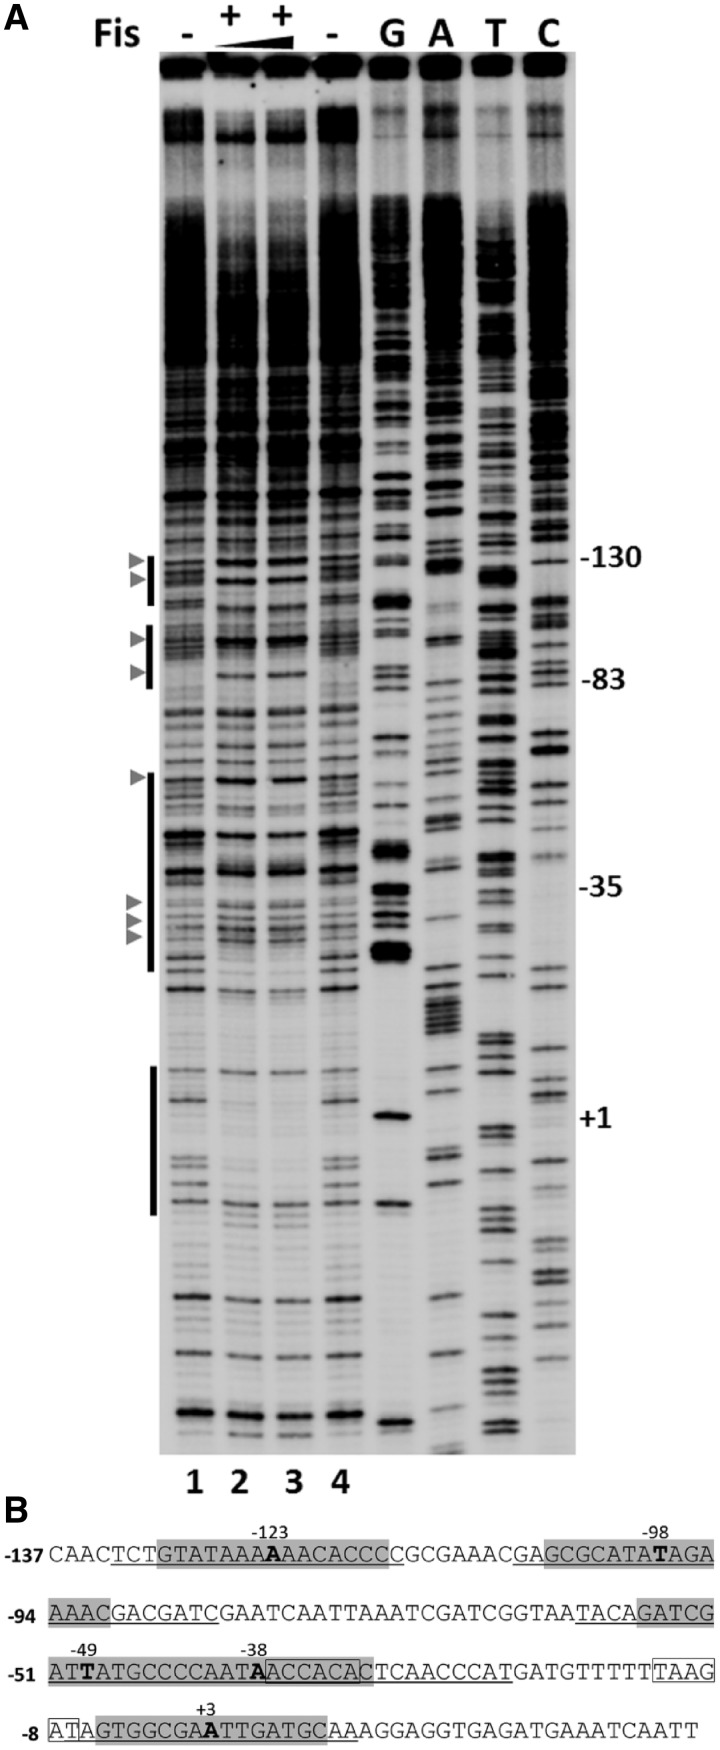 Footprinting analysis of Fis binding at P mom . ( A ) DNase I footprinting analysis of Fis binding sites in P mom .  Plasmid pUW4 was incubated with Fis (288 and 384nM in lanes 2 and 3, respectively) prior to digestion with DNase I. Primer extension was carried out with Klenow polymerase using  mom  reverse primer. The vertical bars on the left side indicate regions protected from DNase I in the presence of Fis. G, A, T and C refer to Sanger's dideoxy sequencing ladders of P mom  obtained using  mom  reverse primer. Numbers on the right denote nucleotide positions with respect to the +1 start site of P mom . DNase I hypersensitive sites are depicted by arrowheads. ( B ) Sequence of  mom  promoter. Regions protected by Fis are underlined and sequences matching with the consensus Fis binding site are highlighted with the central nucleotide emboldened and its position indicated. The −35 and −10 promoter elements are boxed.